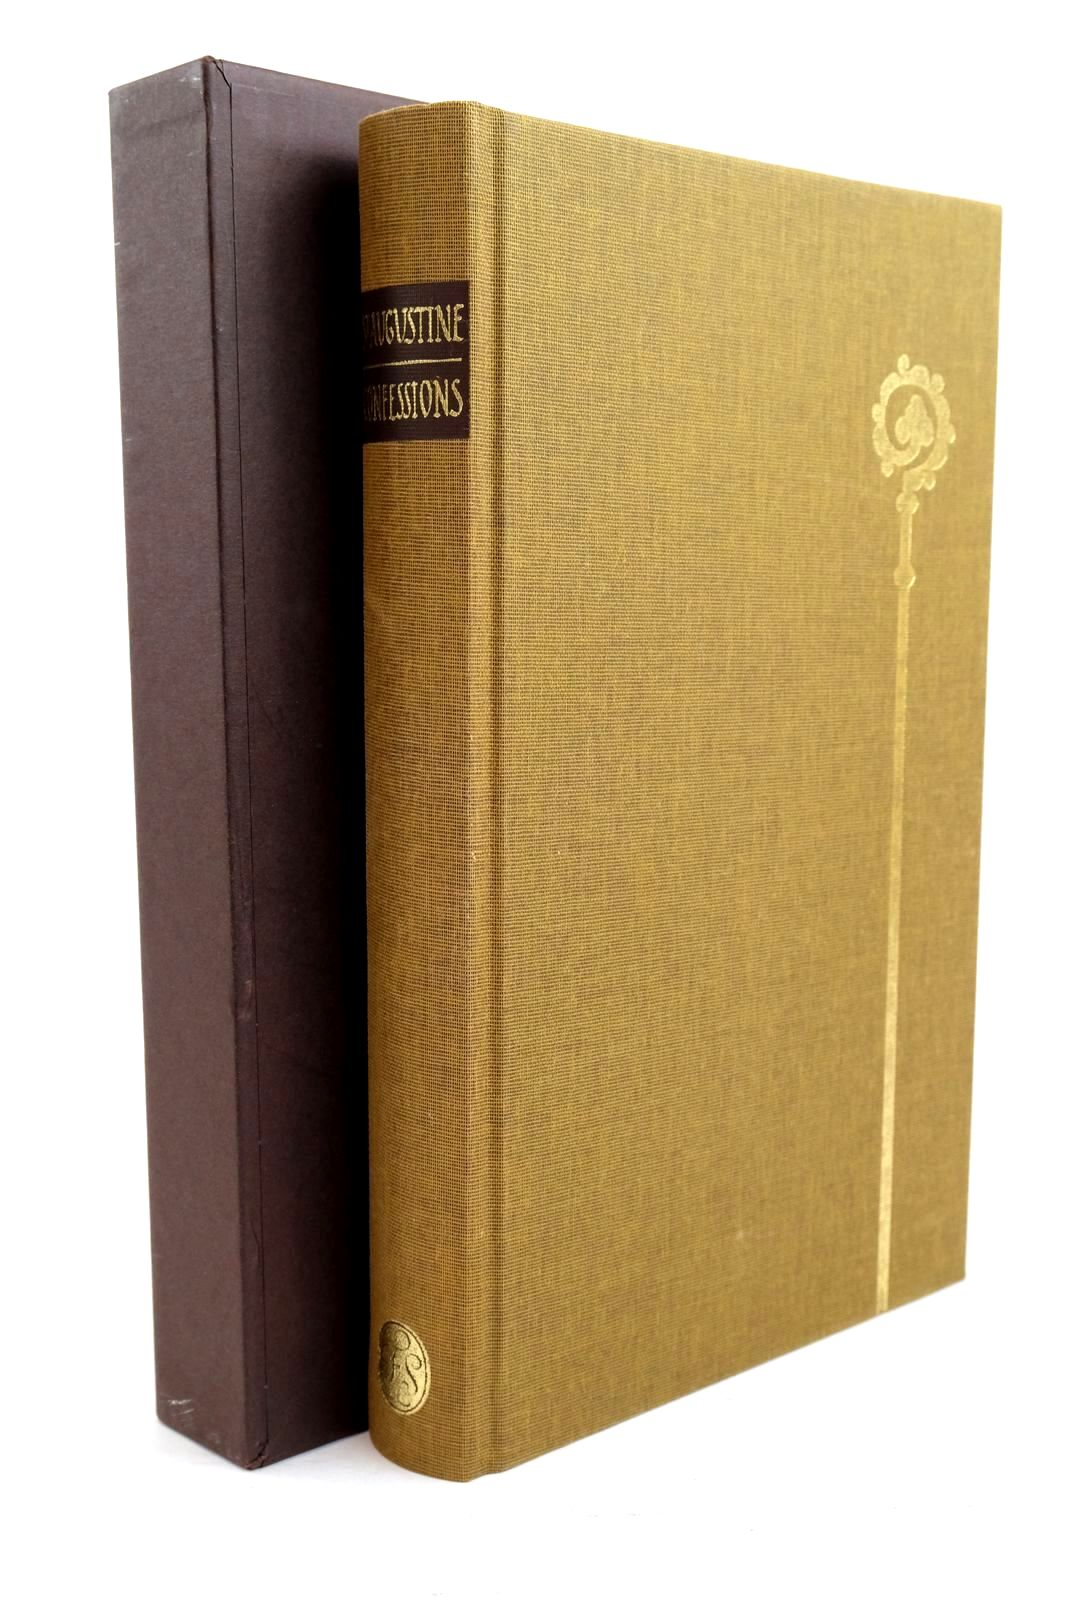 Photo of ST AUGUSTINE BISHOP OF HIPPO CONFESSIONS written by Pilkington, J.G. Williams, Rowan illustrated by Brett, Simon published by Folio Society (STOCK CODE: 1320839)  for sale by Stella & Rose's Books